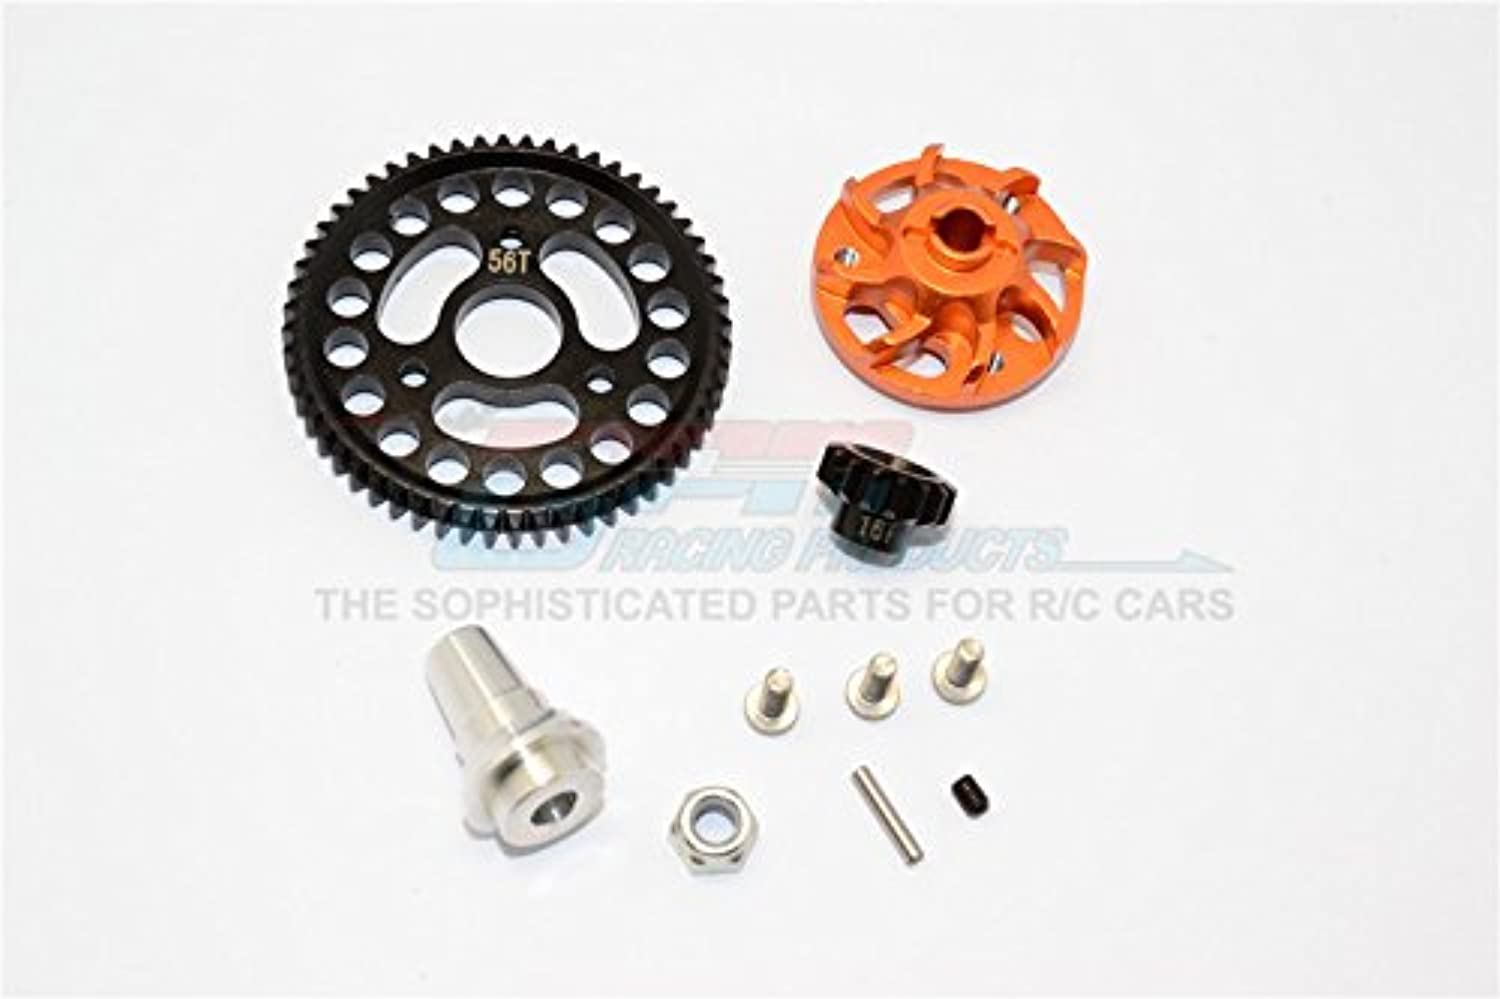 Traxxas Slash 4x4 Low-CG Version Upgrade Parts Aluminum Gear Adapter With Steel 32 Pitch 56T Spur Gear & 16T Motor Gear - 1 Set orange